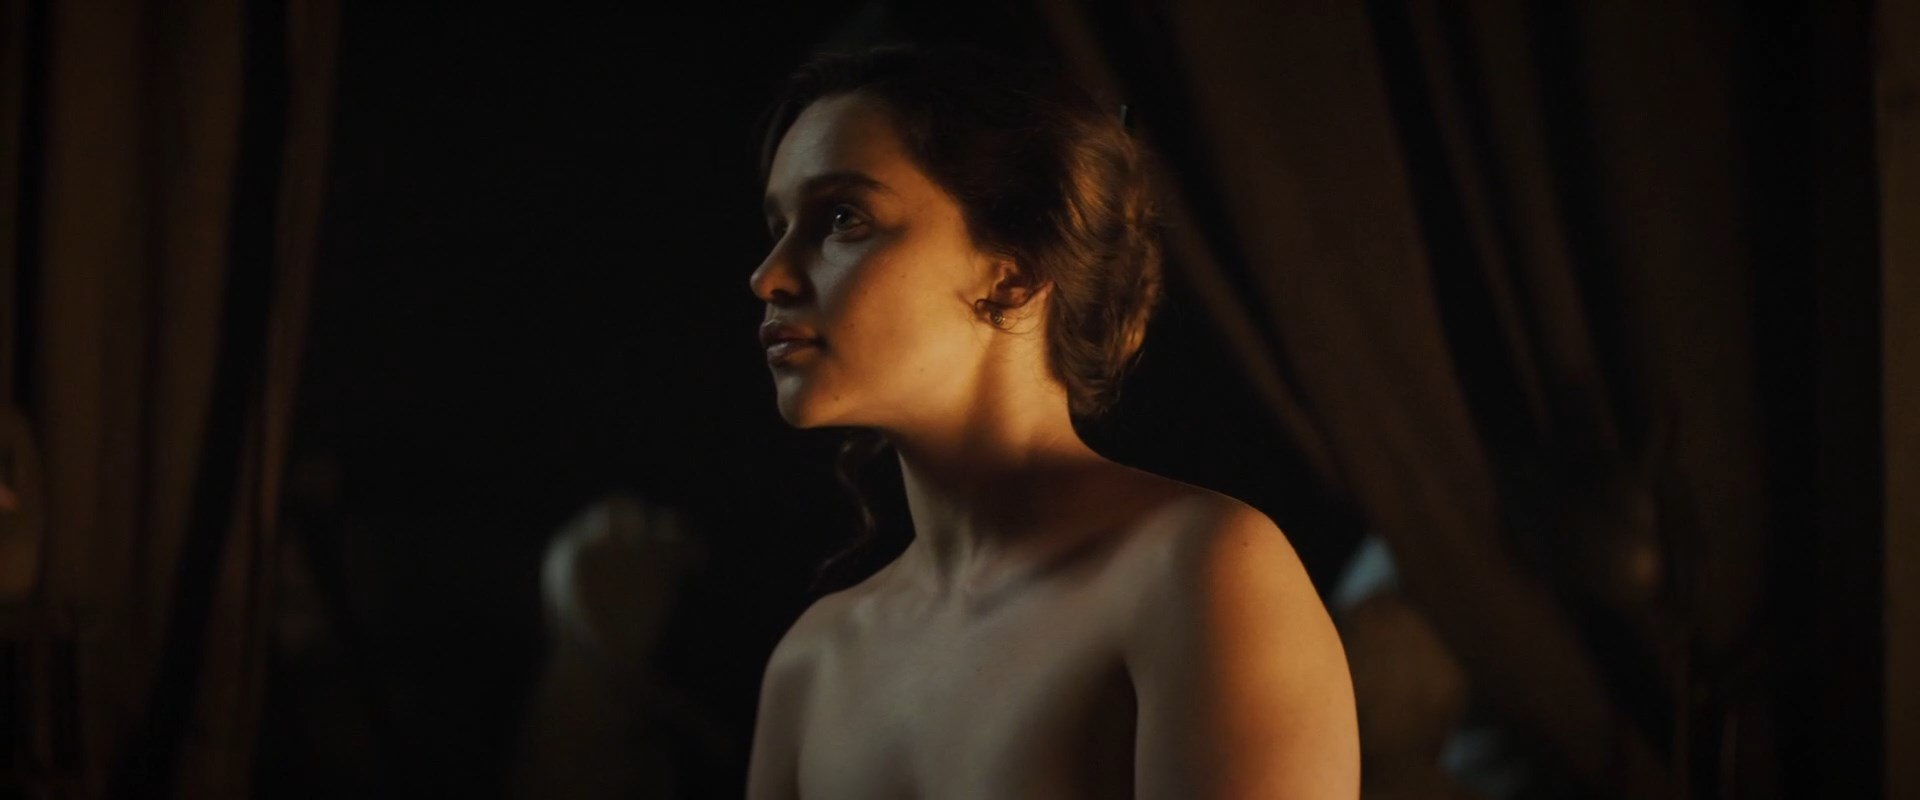 Emilia clarke nude voice from the stone 2017 7